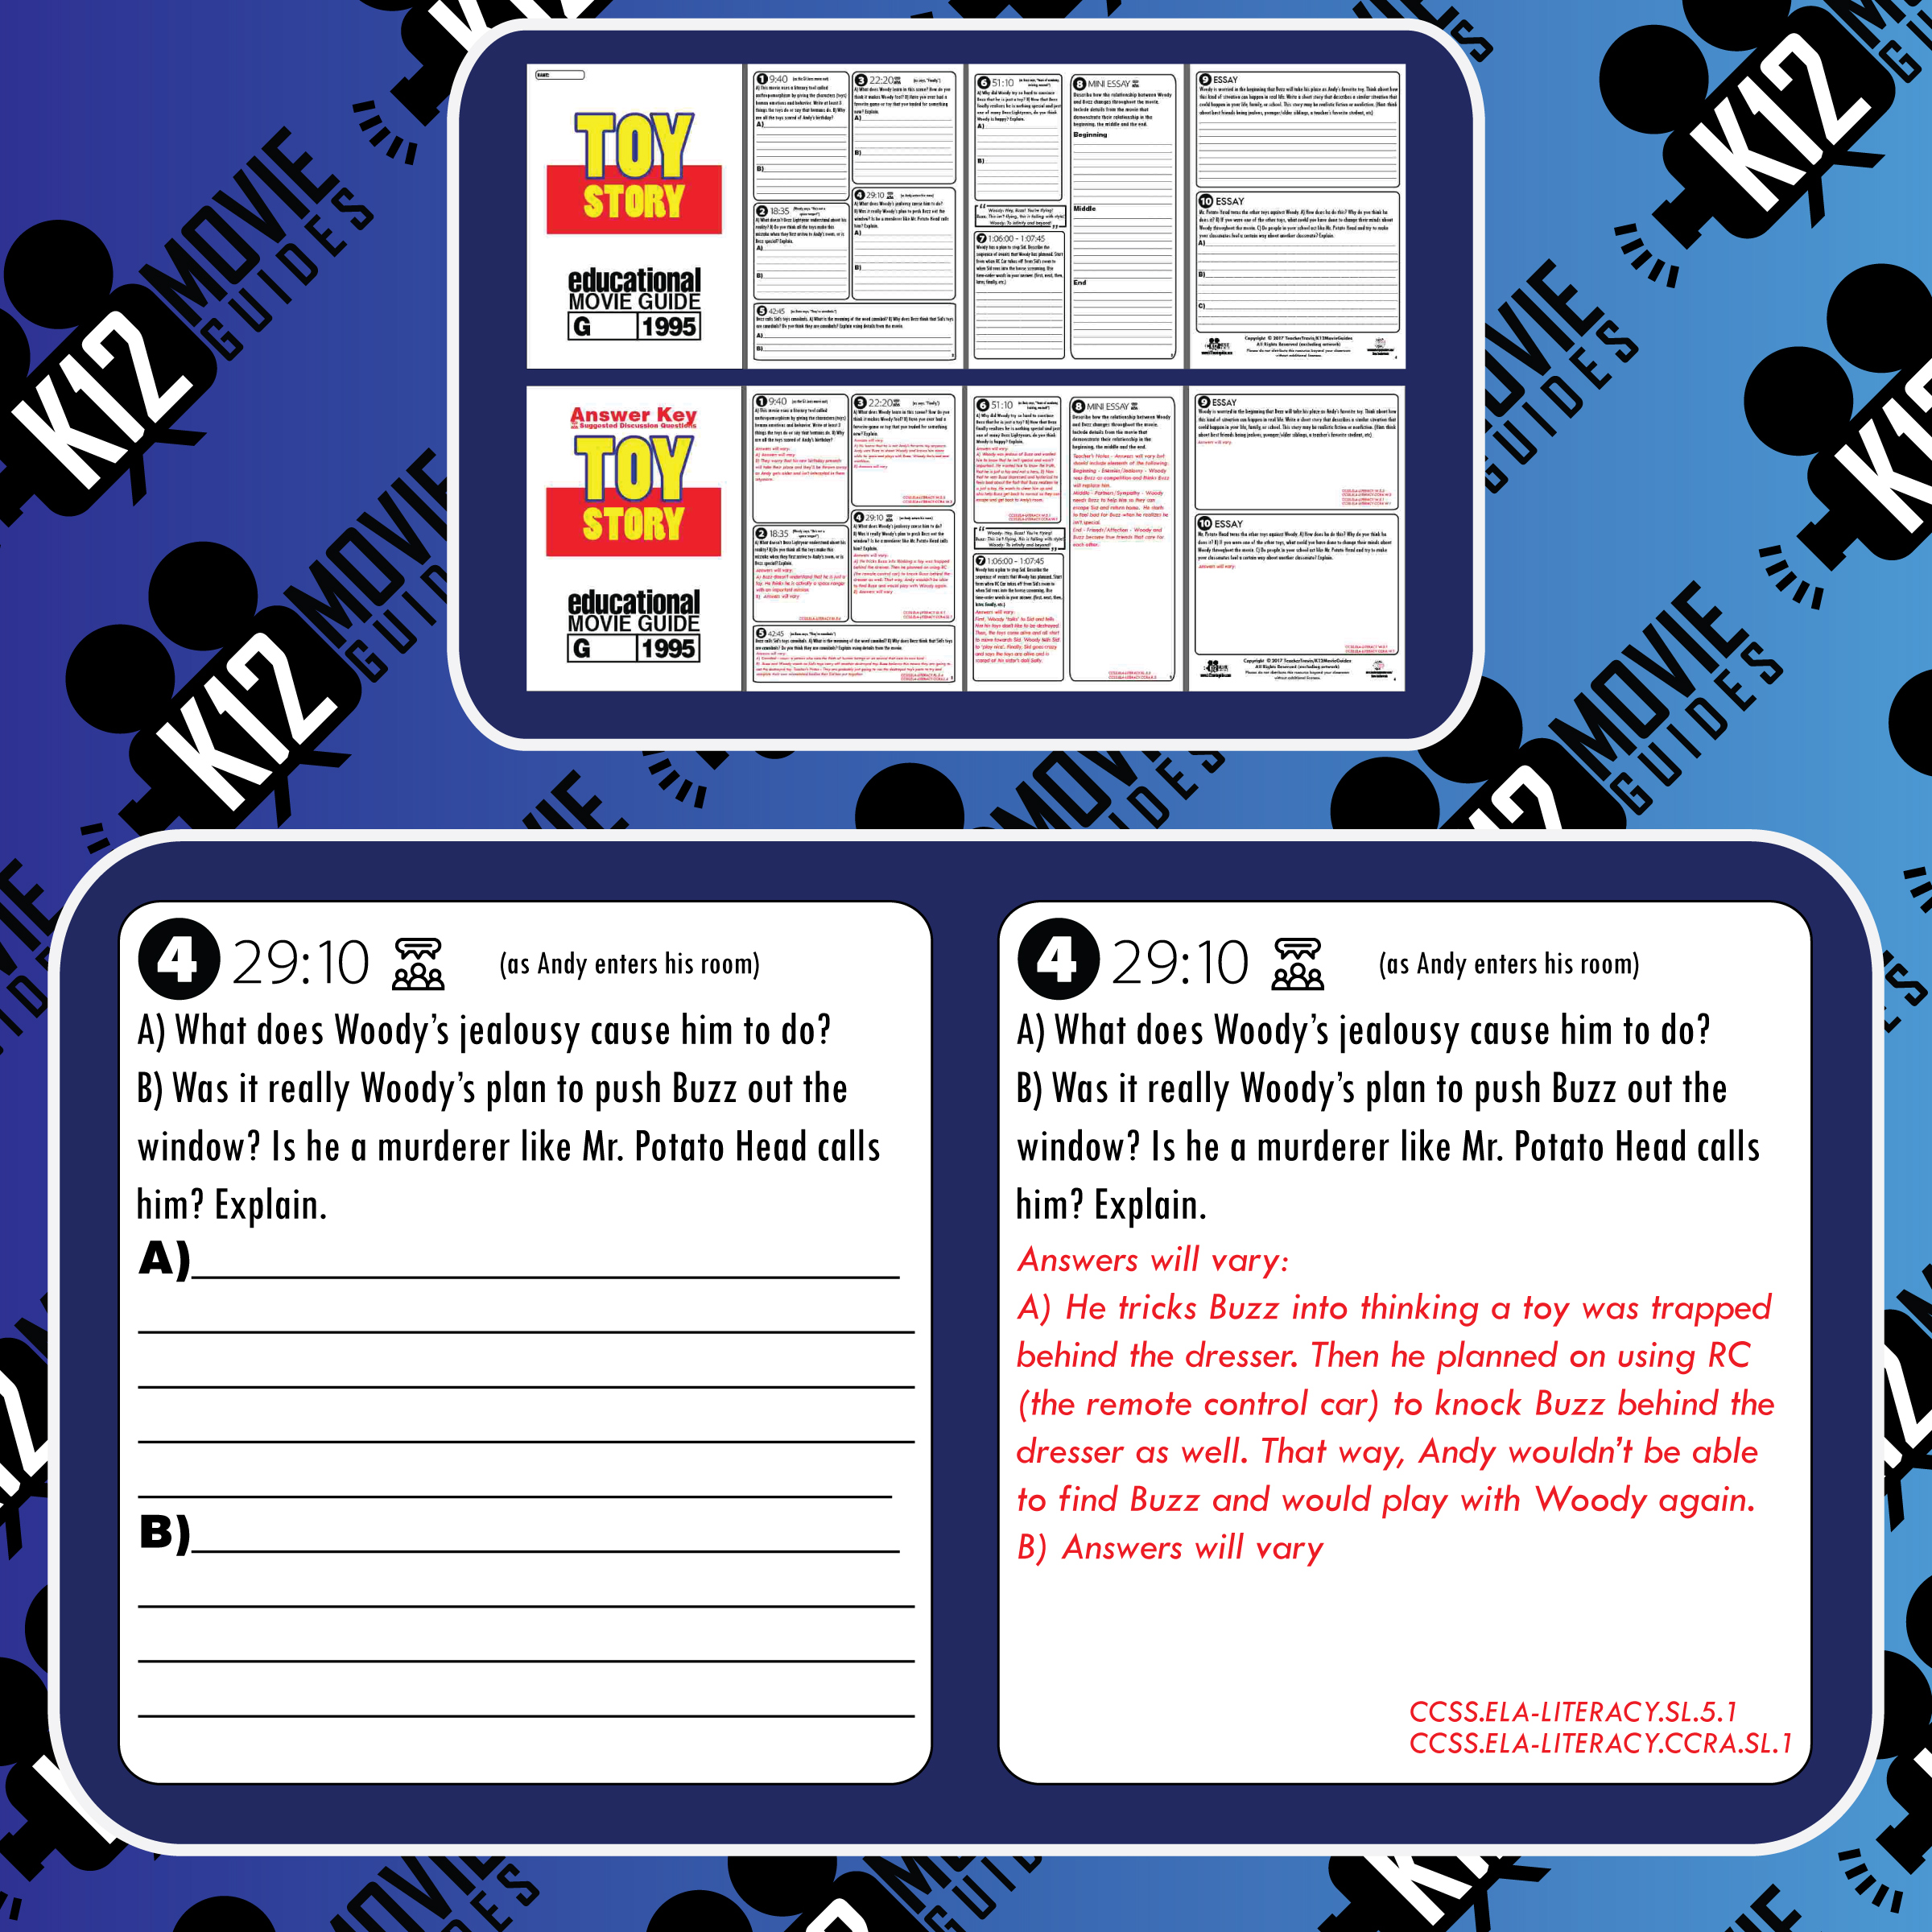 Toy Story Movie Guide | Questions | Worksheet | Google Form (G - 1995) Free Sample